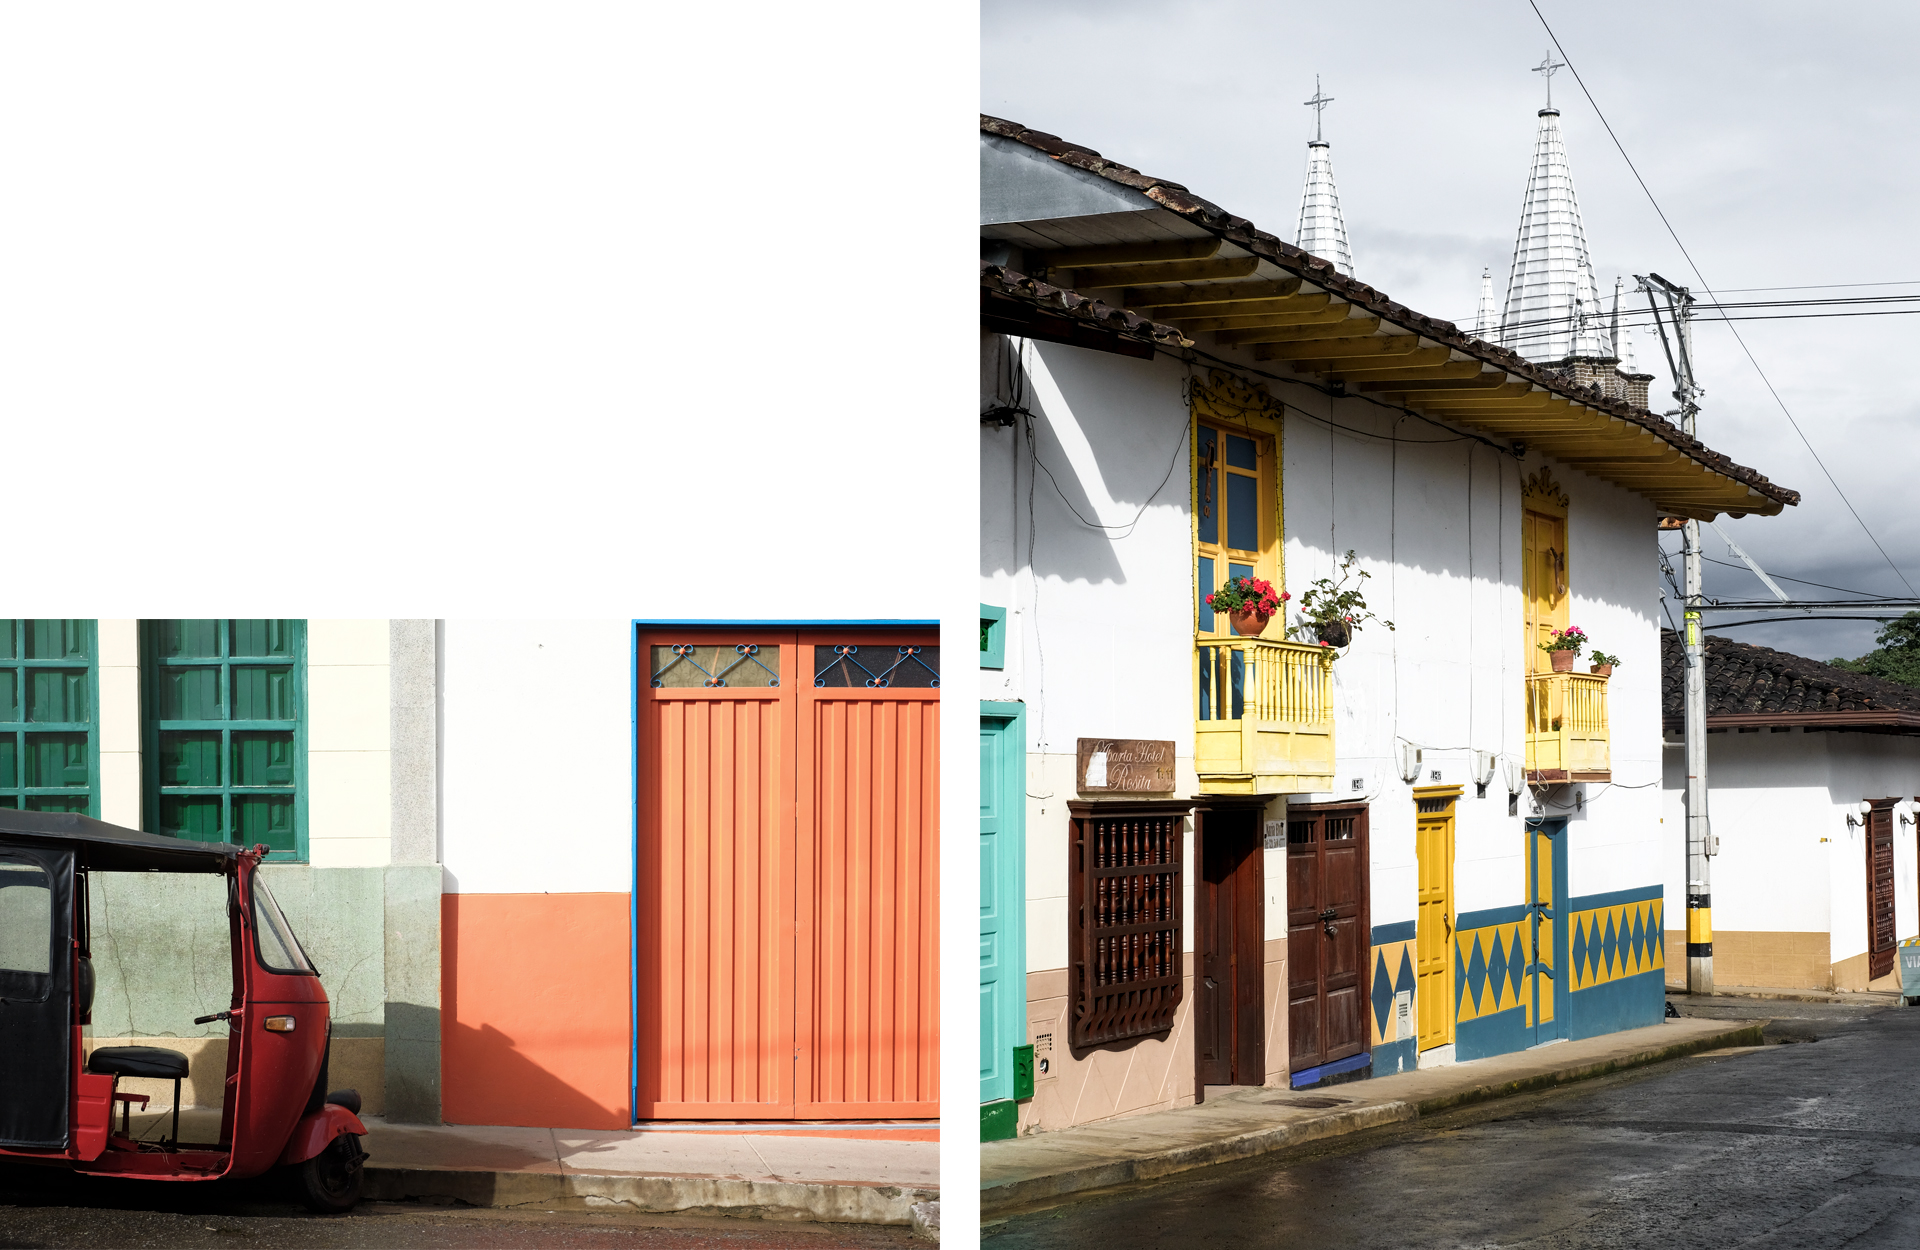 Authentic Colombia Jardin red tuk-tuk and facades